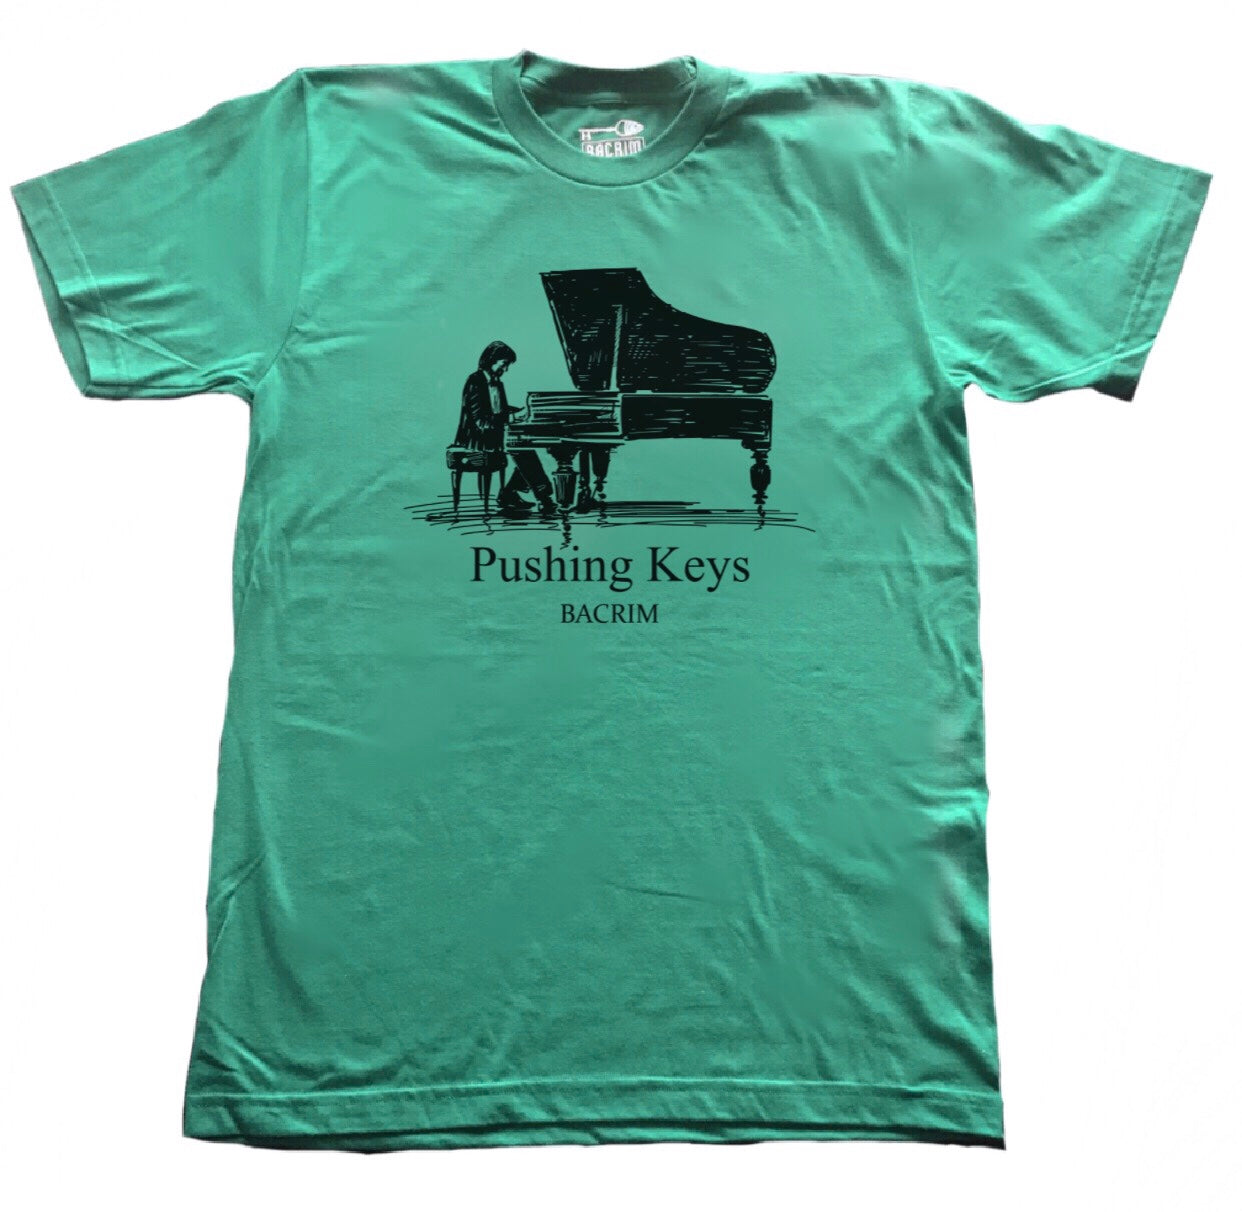 Pushing Keys